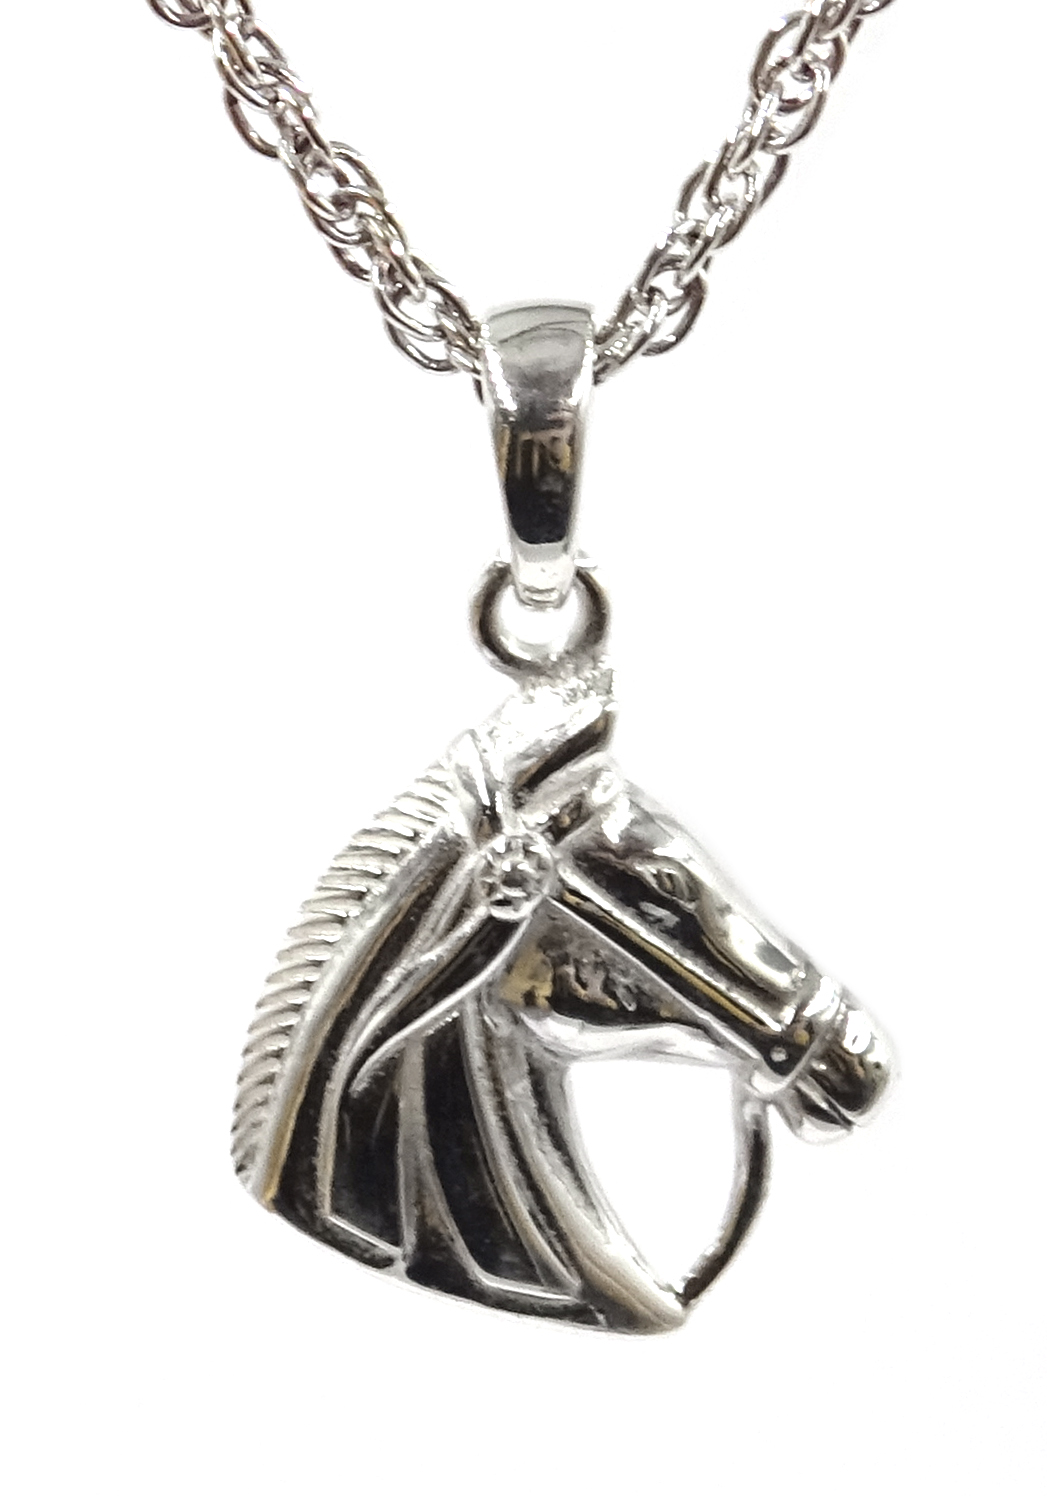 Lot 1056 - Silver horses head pendant necklace,